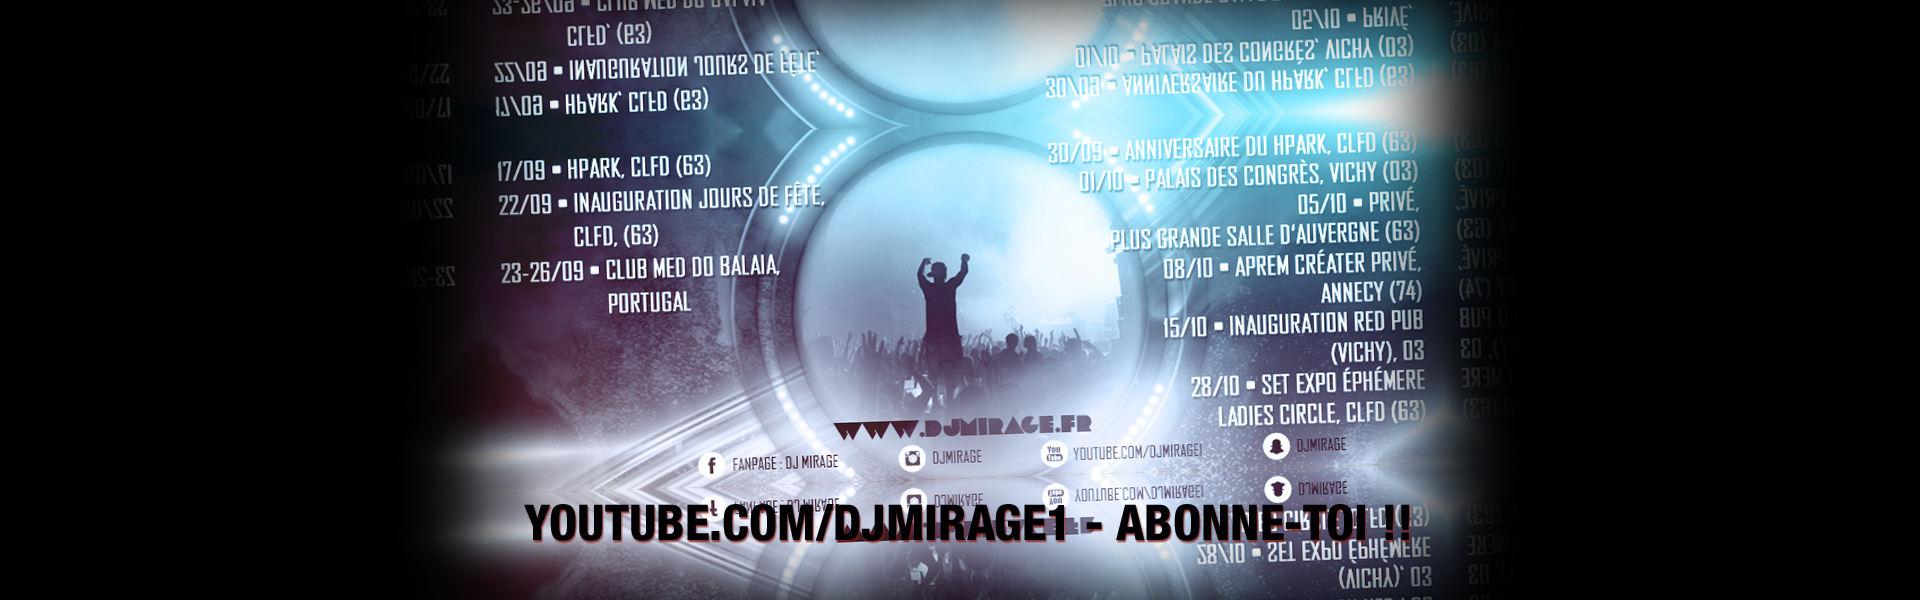 http://djmirage.fr/wp-content/uploads/2016/10/slider-accueil-deejaymirage-septoct16.jpg